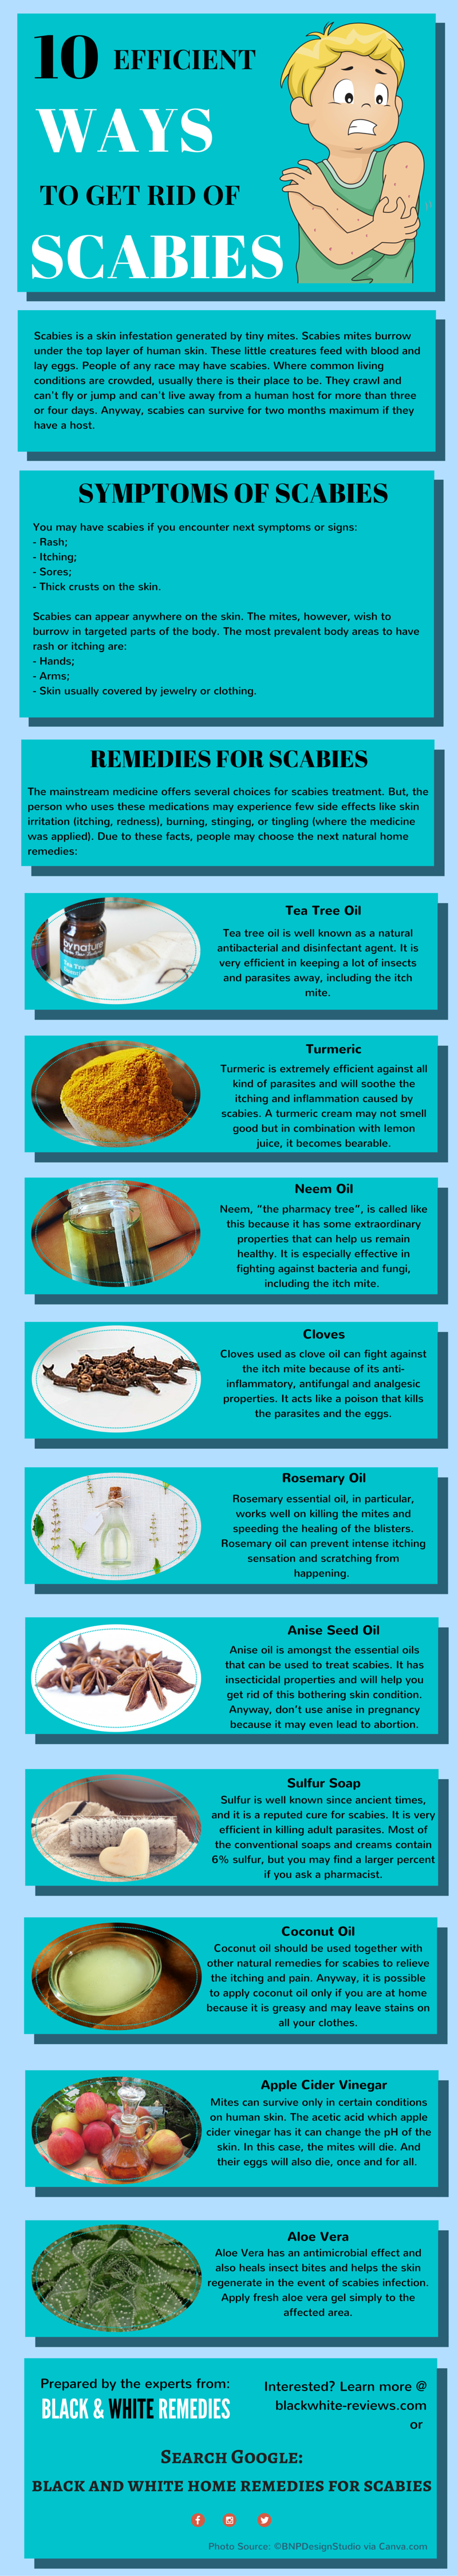 14 Remarkable Home Remedies Which Help To Get Rid of Scabies ...